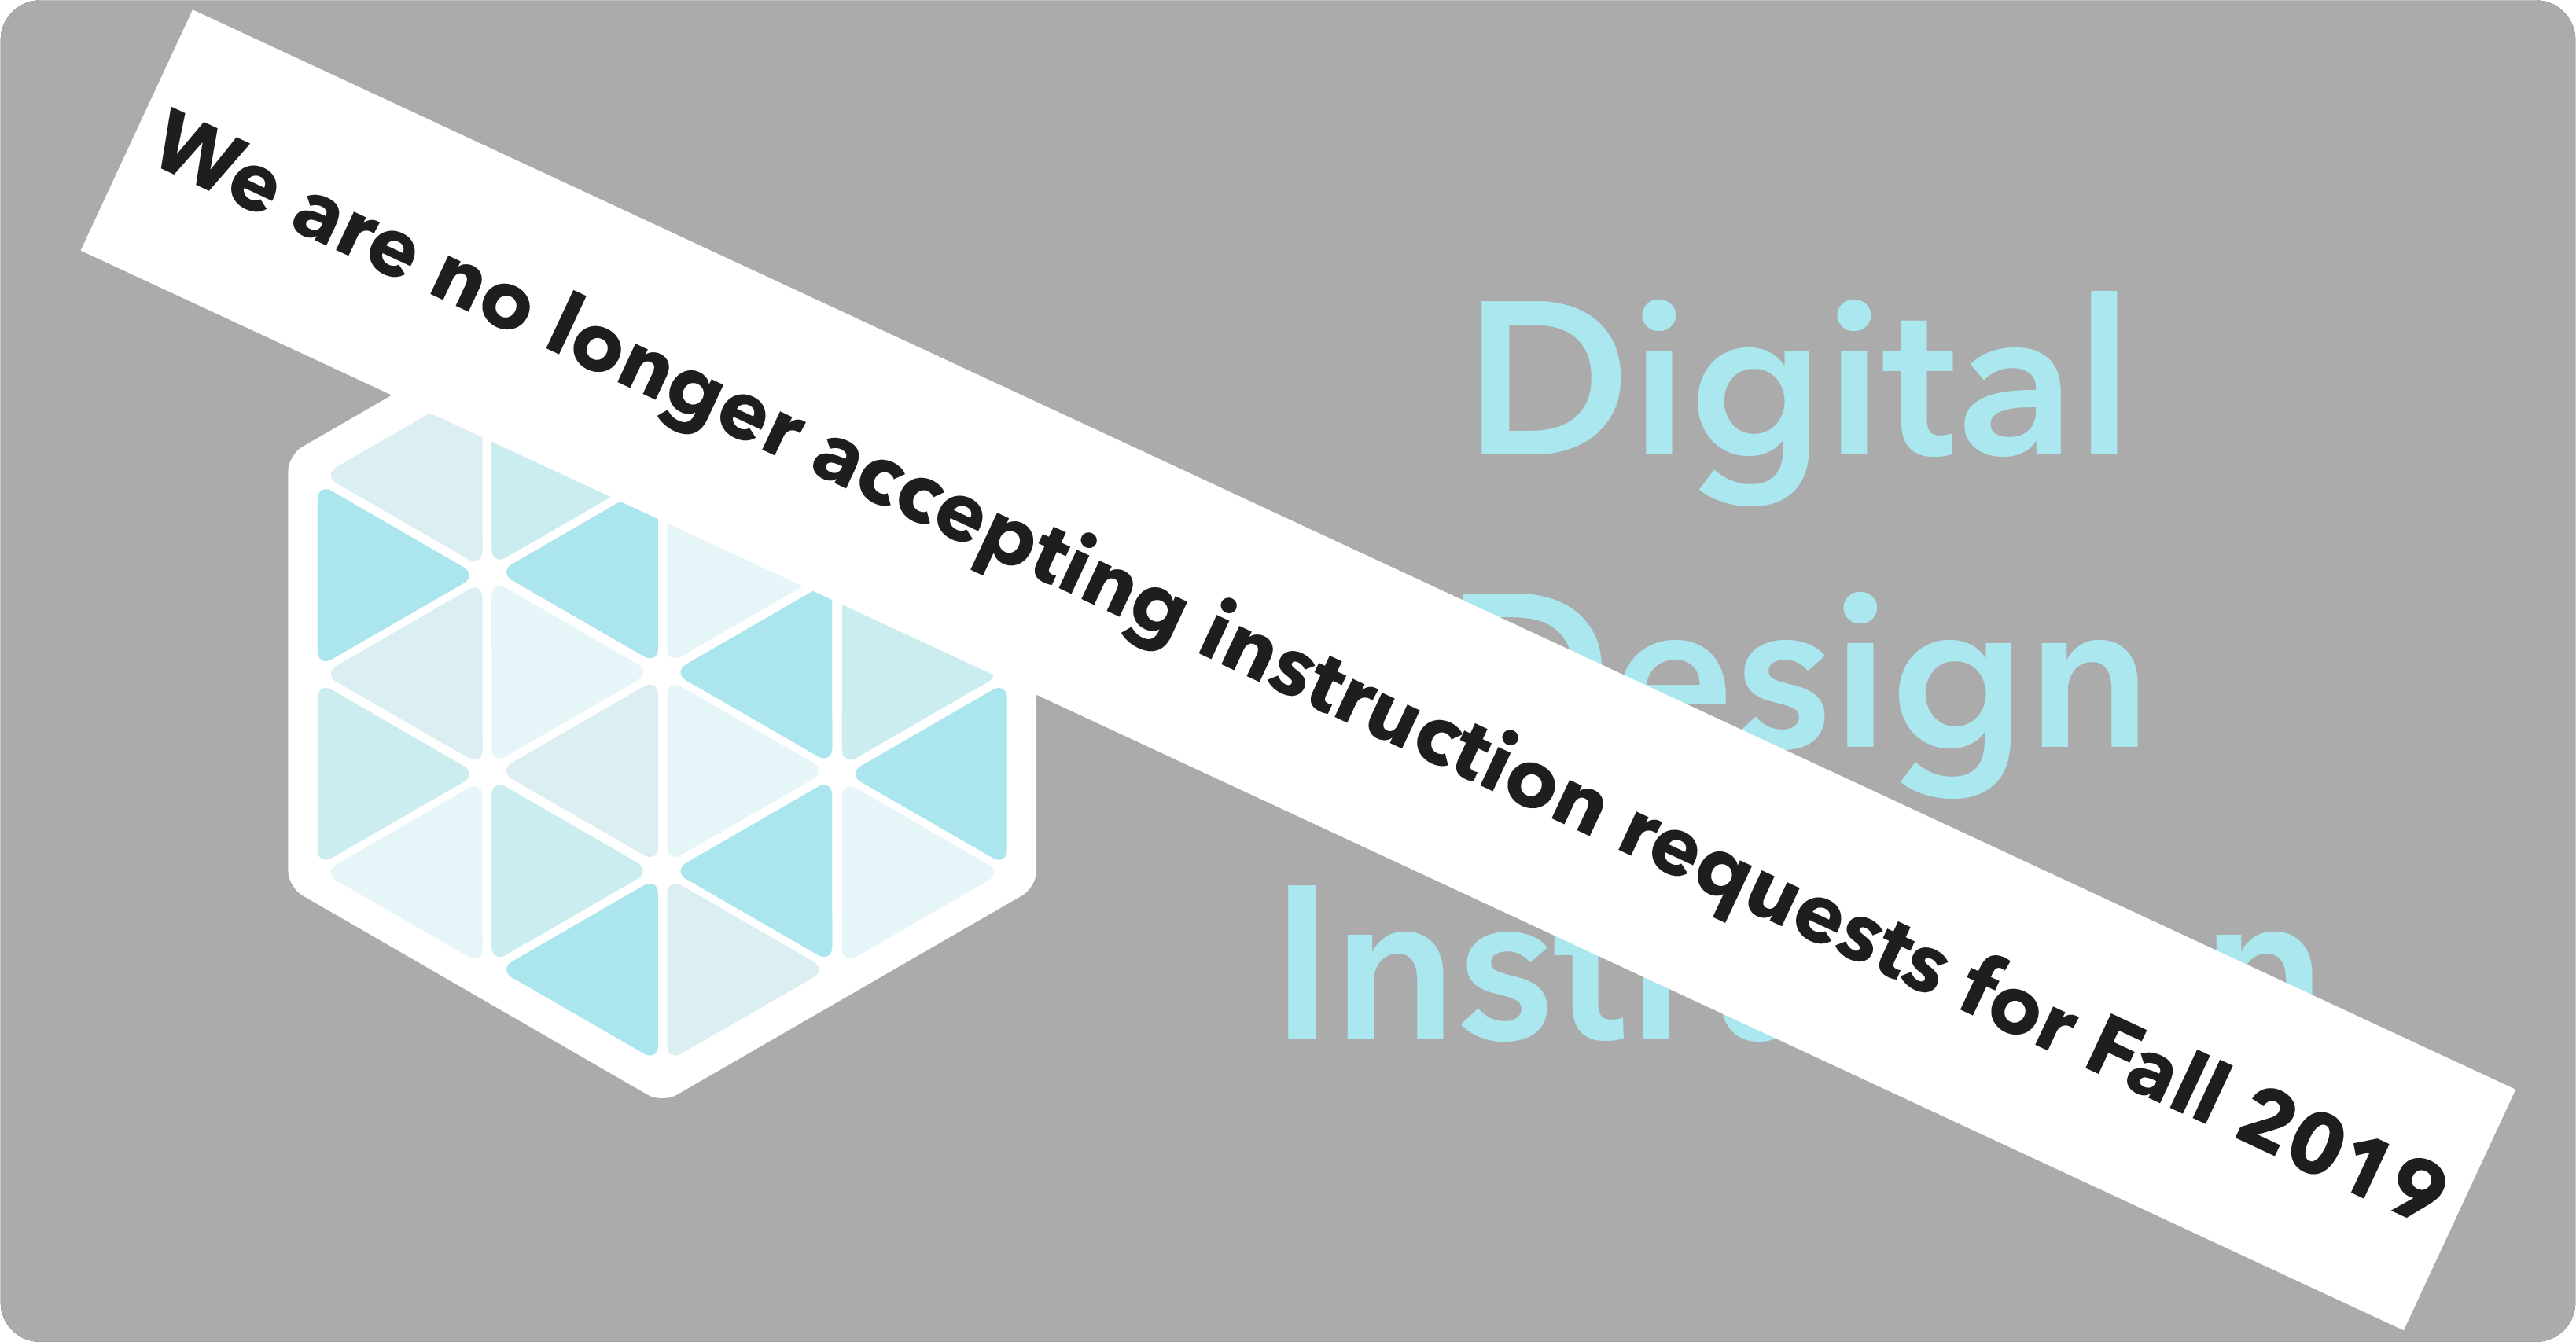 Button for Digital Design Instruction Requests - We are no longer accepting instruction requests for Fall 2019